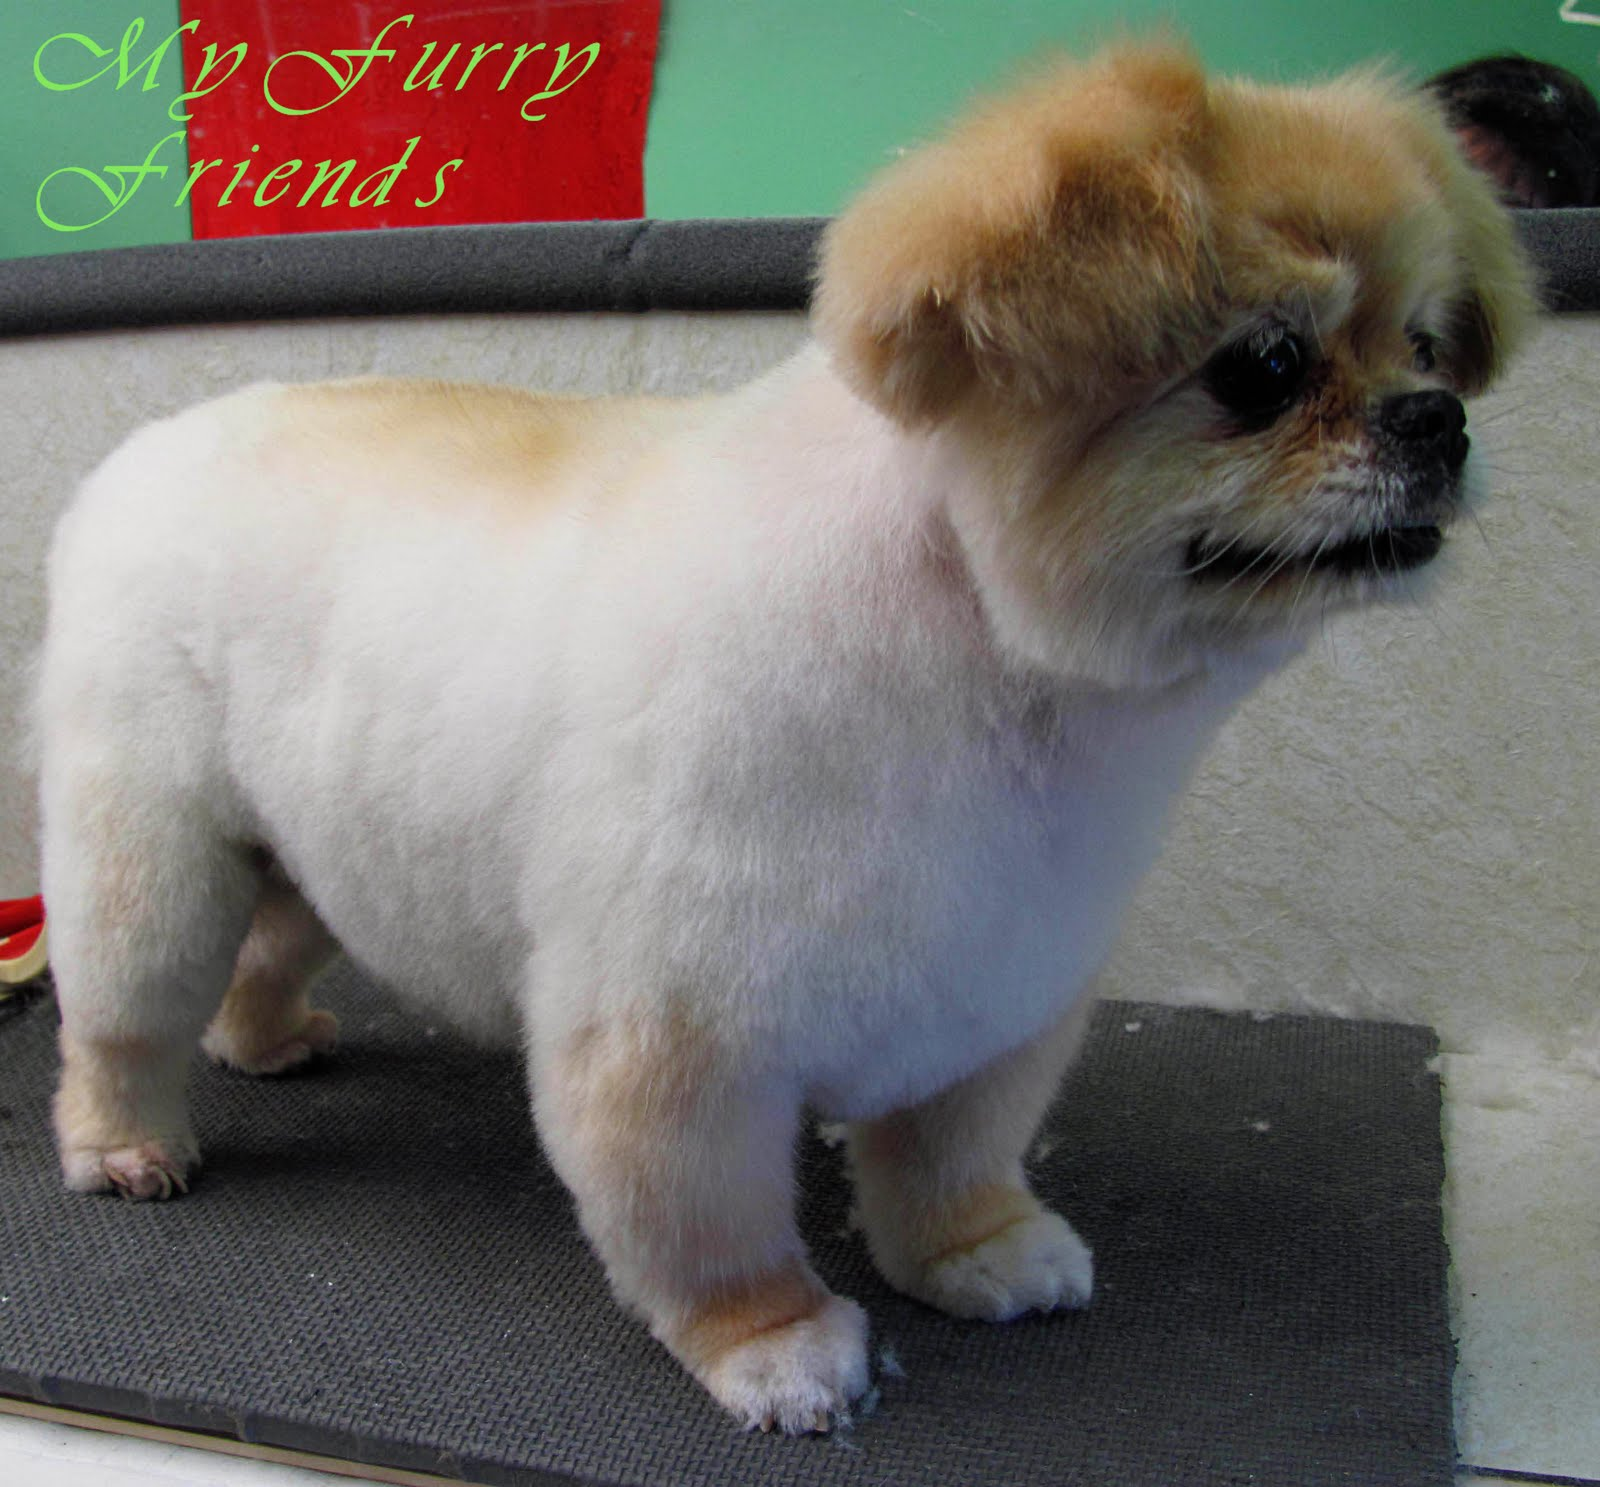 pet grooming: the good, the bad, & the furry: grooming a pekingese